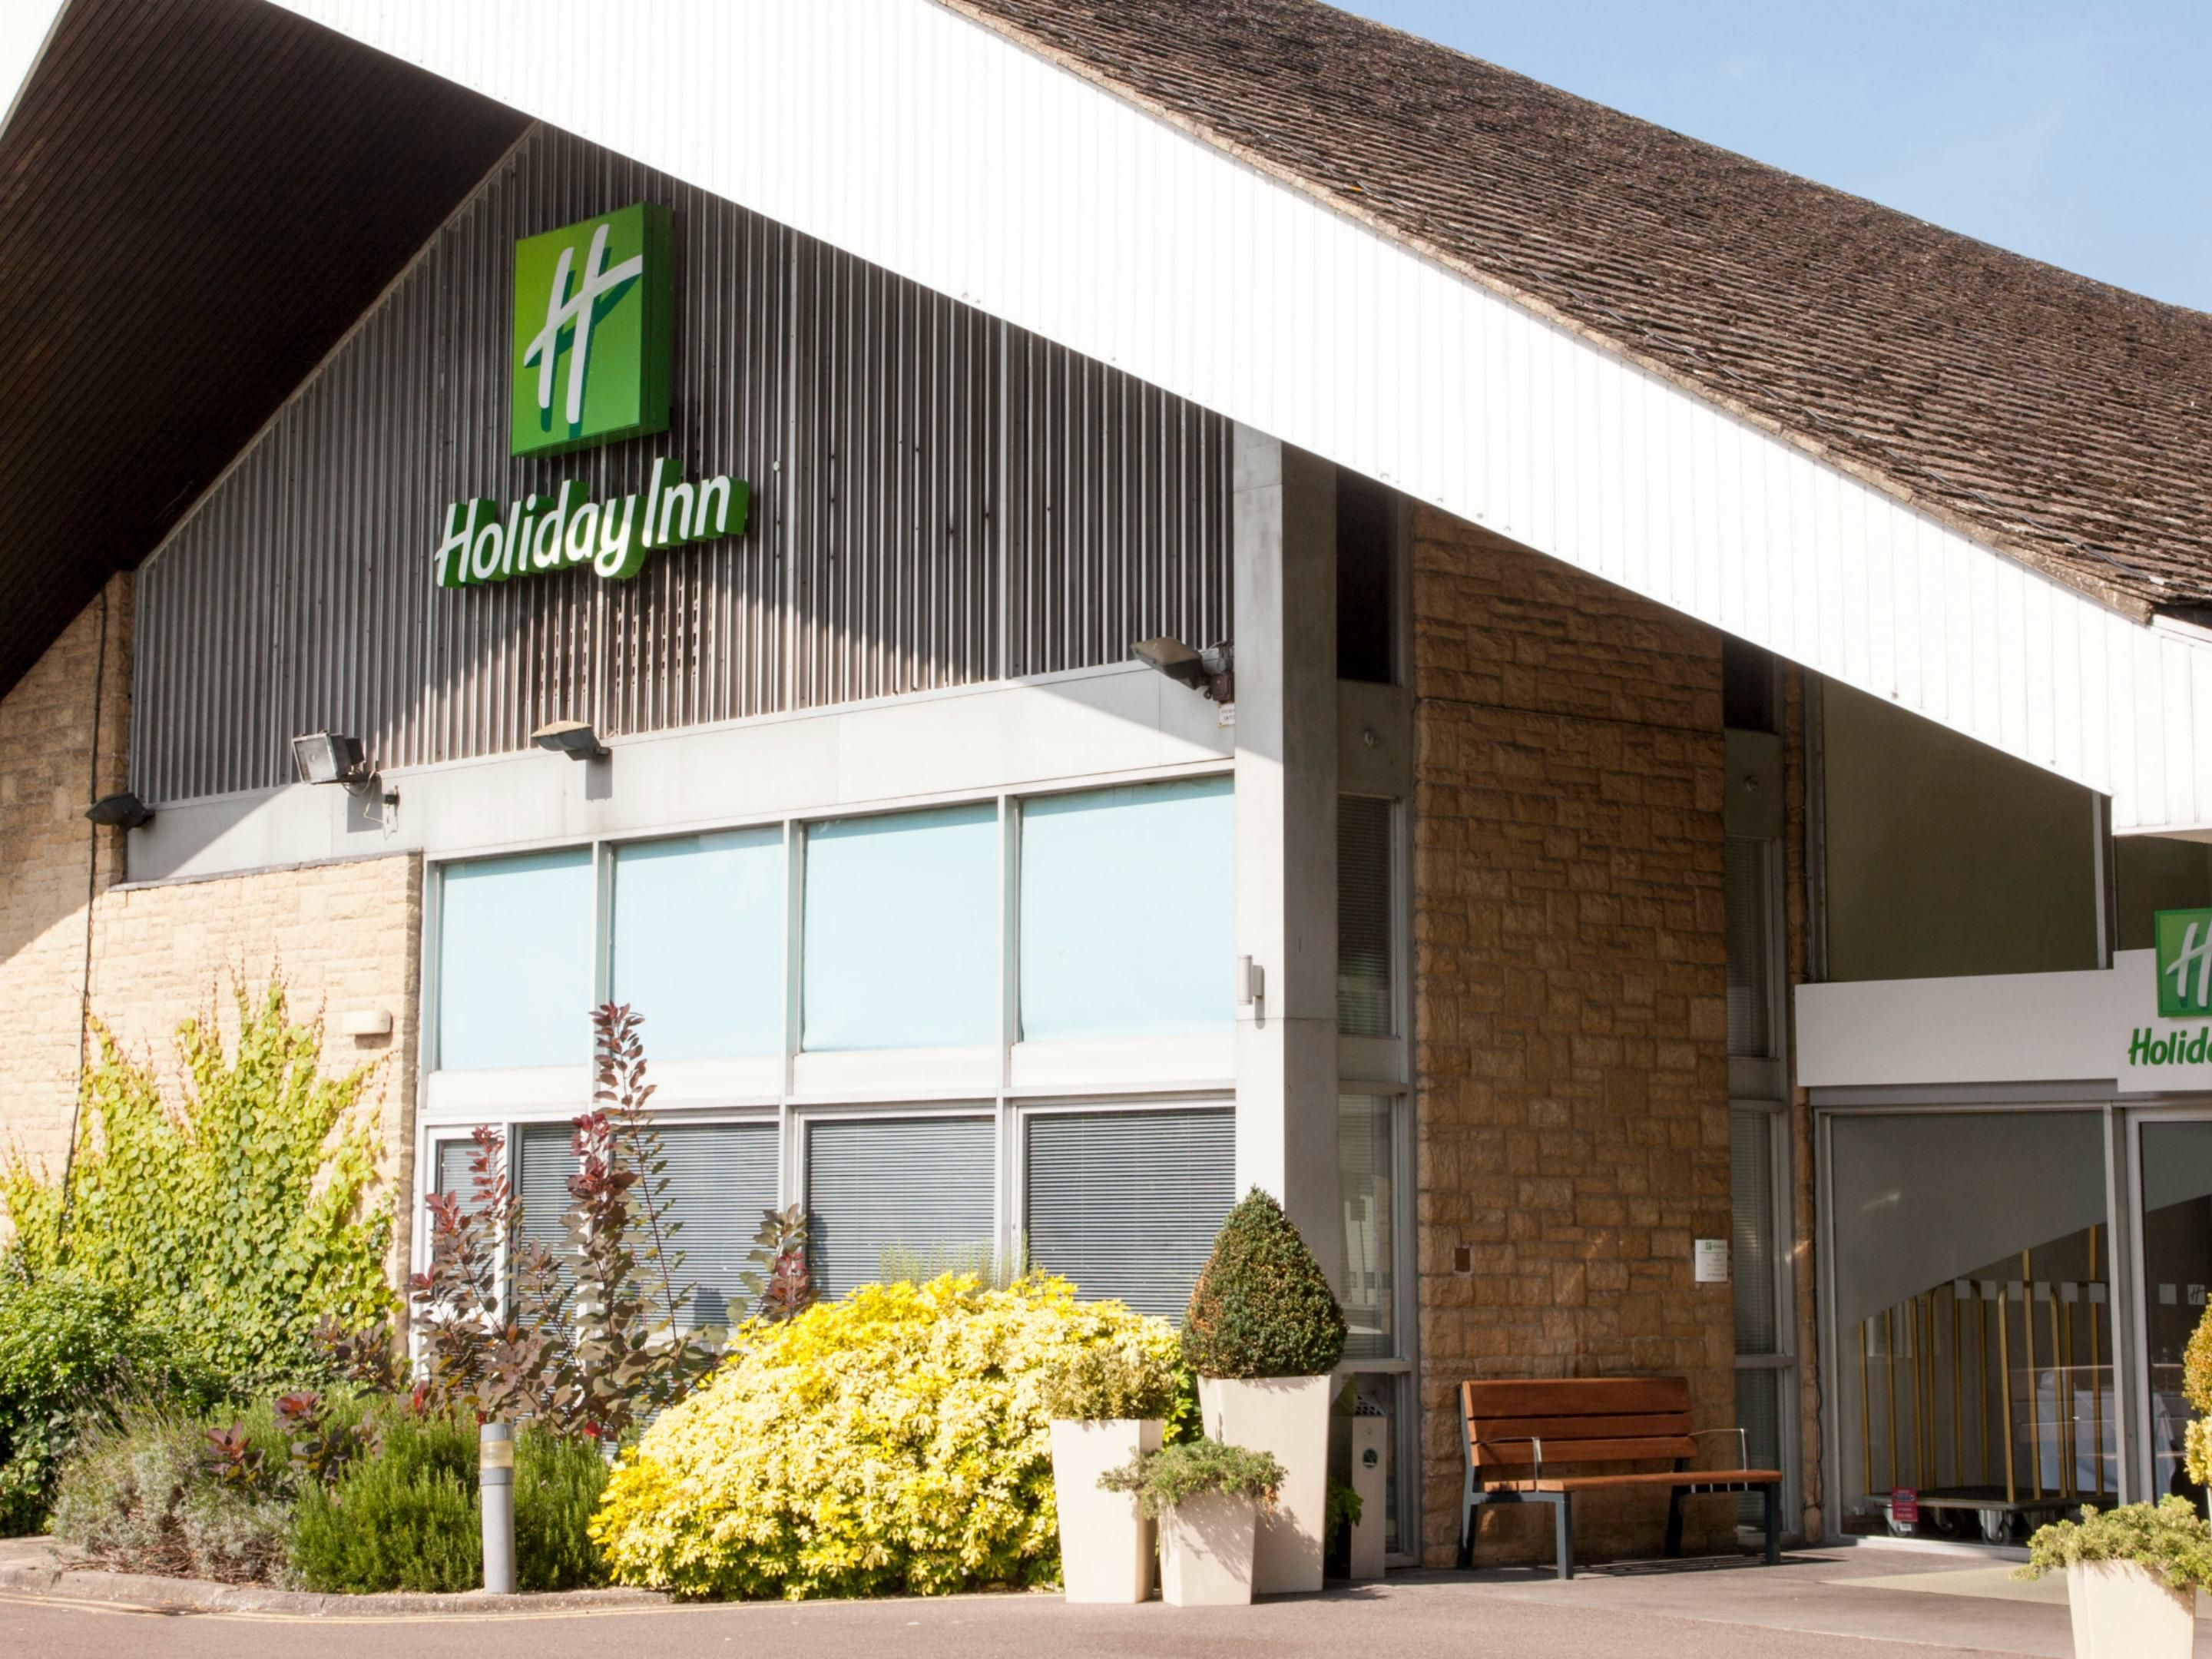 We hope you enjoy your stay at the Holiday Inn Swindon